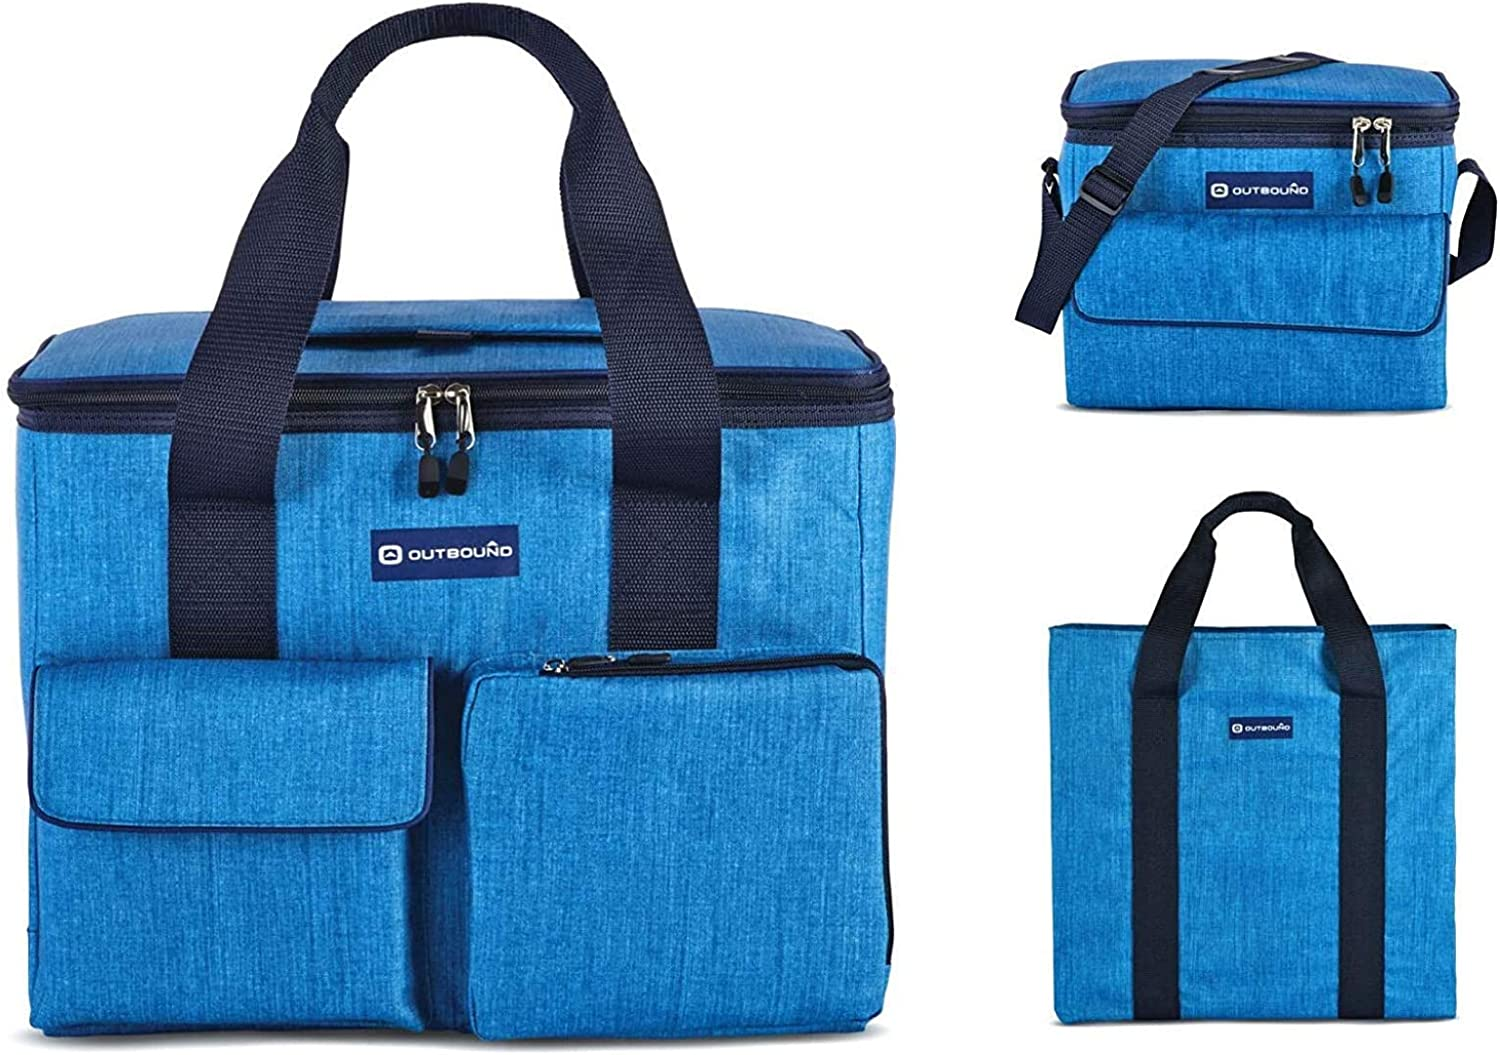 OUTBOUND Soft Cooler | Portable 3-Piece Insulated Large 30 Can, Small 6 Can Cooler and Tote Bag for Beach, Camping, and Outdoors | Collapsible, Heathered Blue